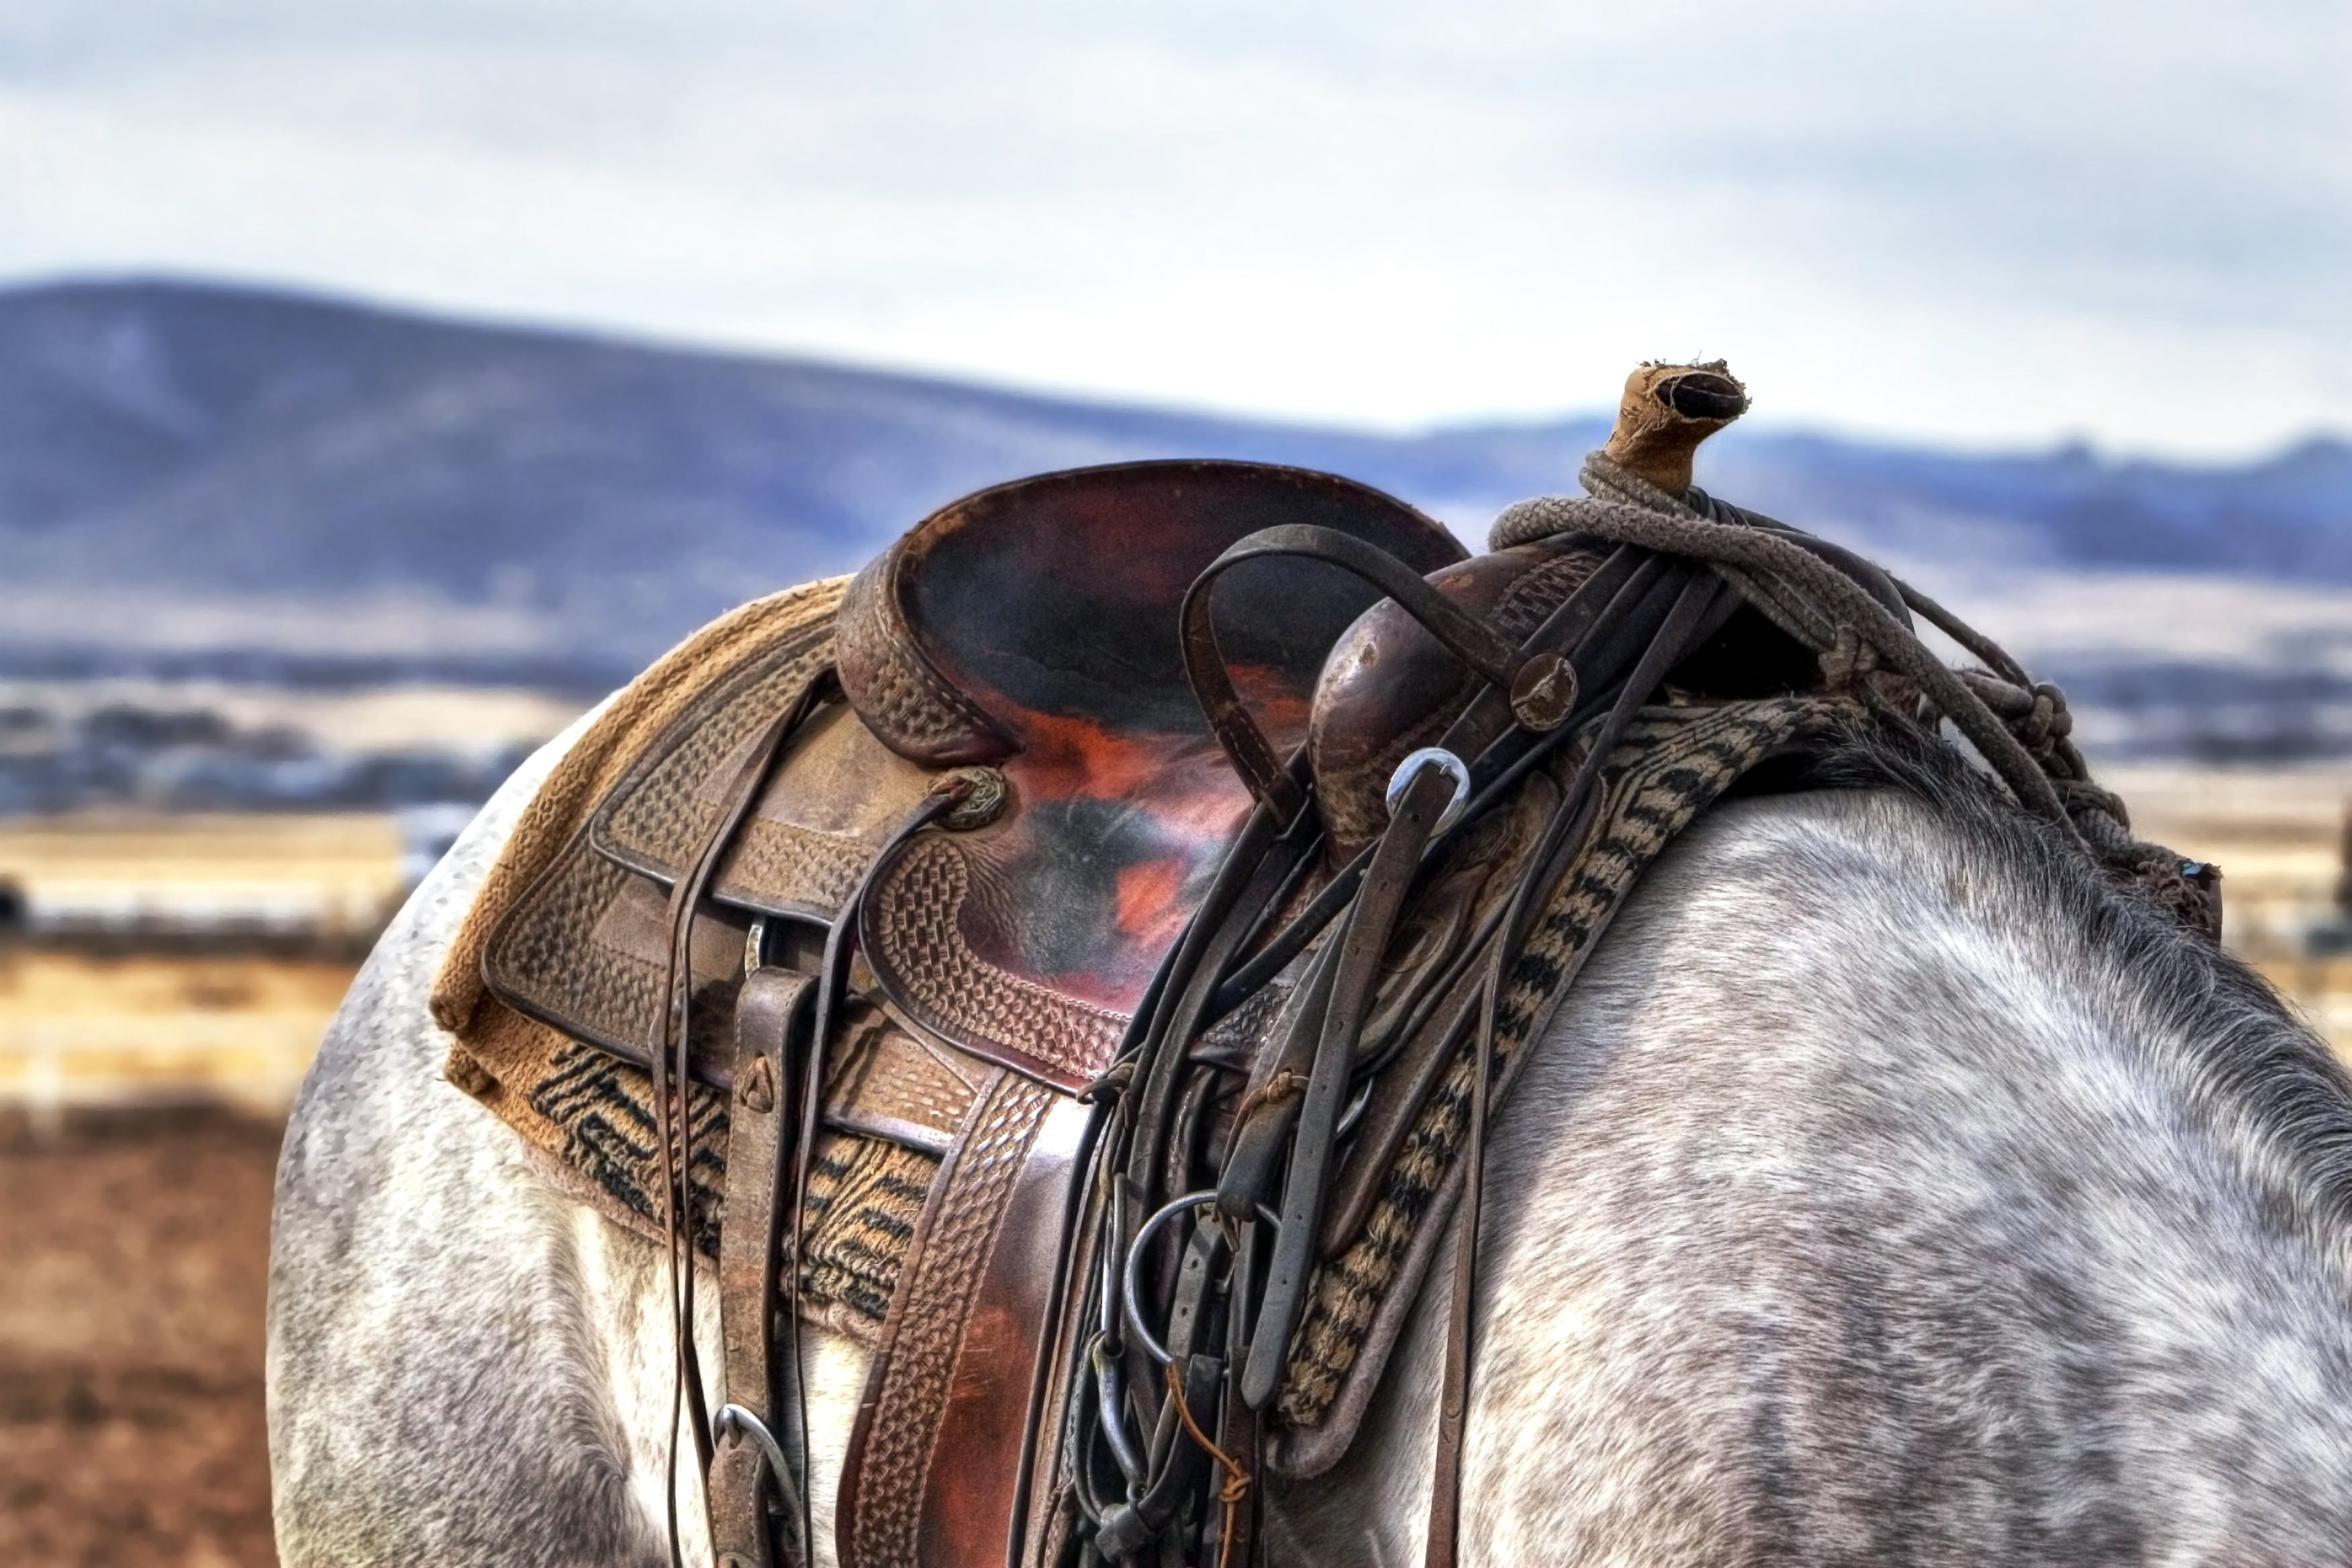 Brown and Black Leather Horse Saddle on White and Gray Animal